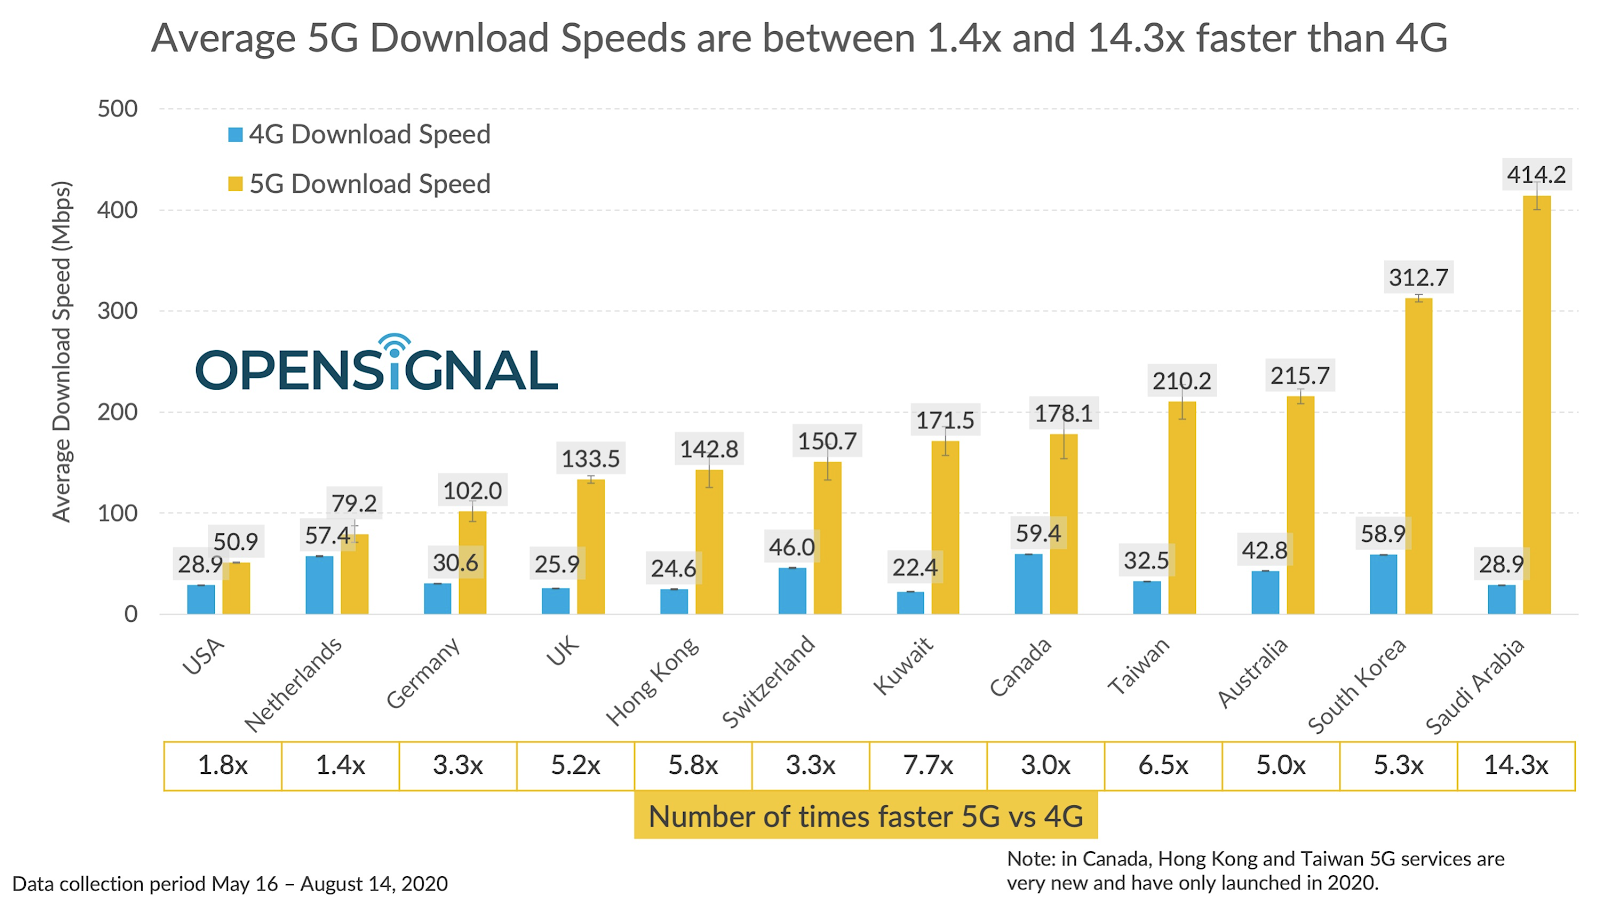 opensignal-5g-vs-4g-speeds-2020